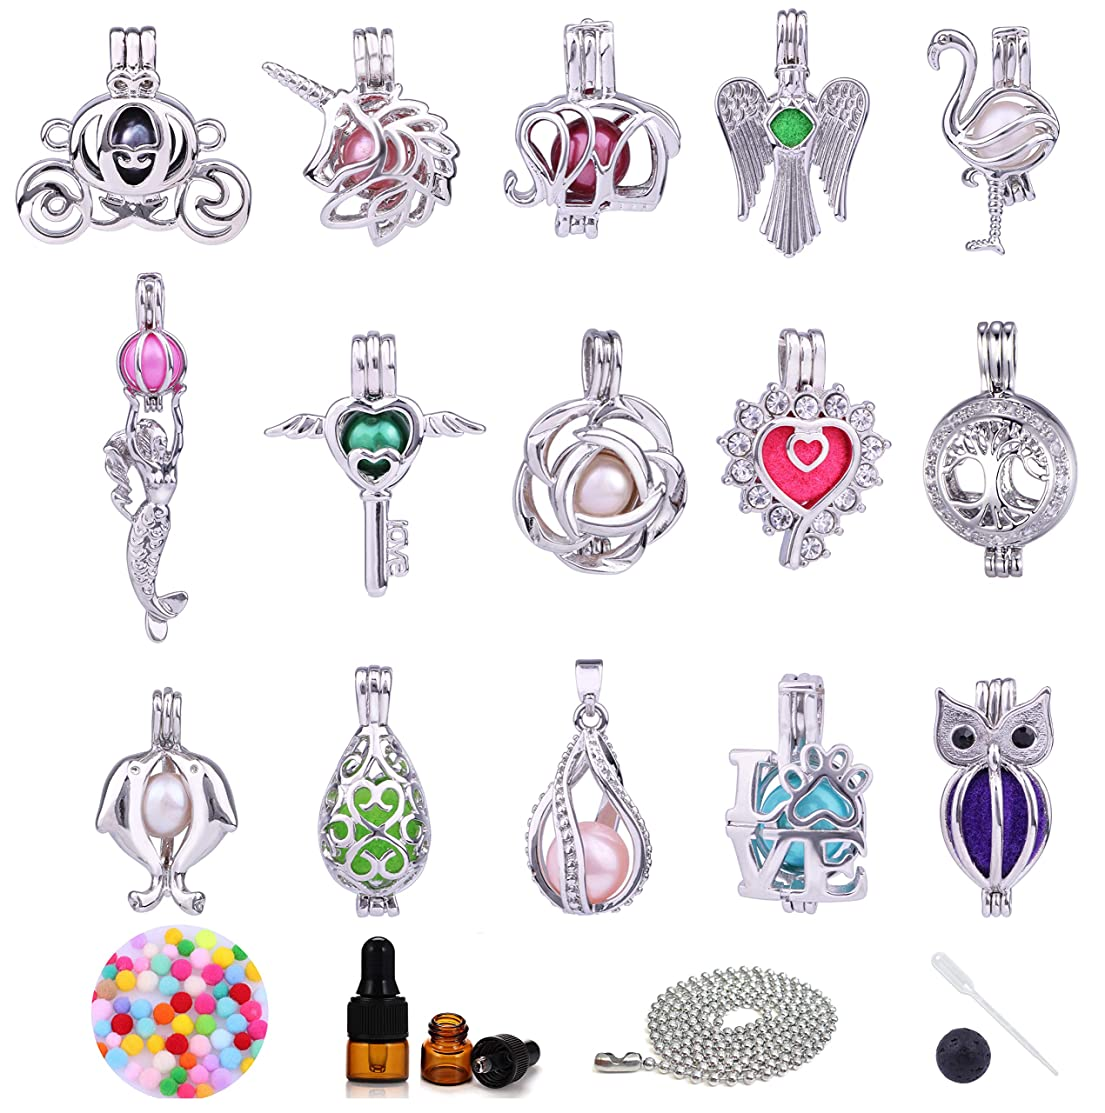 15pcs Mix White Gold Plated Copper Pumpkin Carriage Elephant Unicorn Mermaid Flower Pearl Bead Cage Locket Pendants for Jewelry Making Essential Oil Scent Diffuser Locket Pendants Christmas Gift